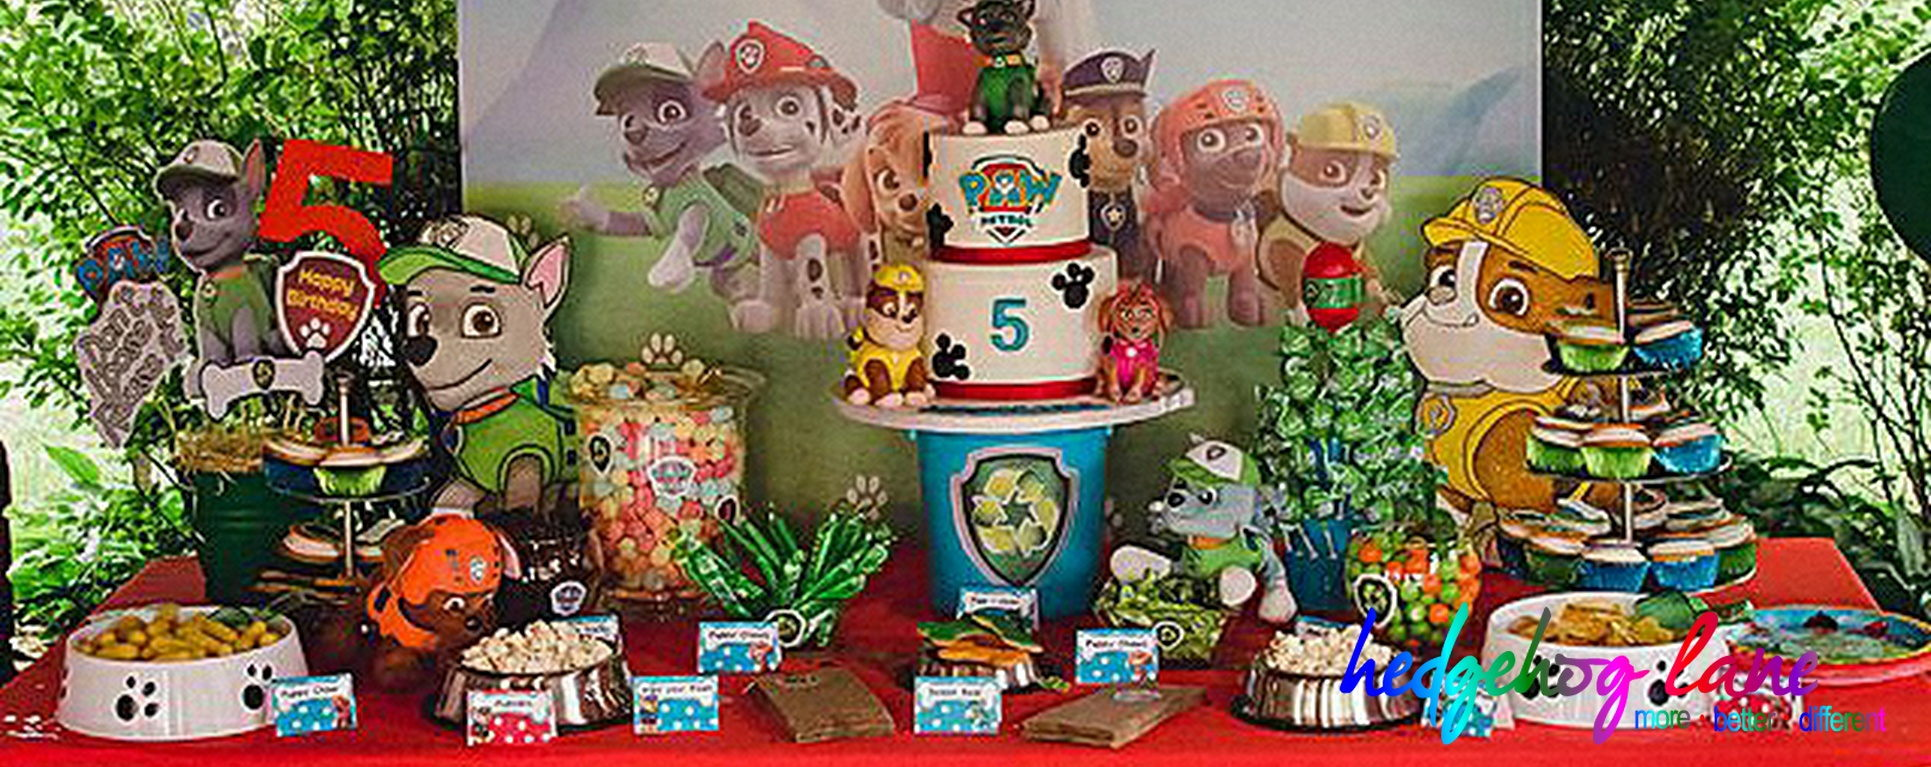 Paw Patrol Dessert Table